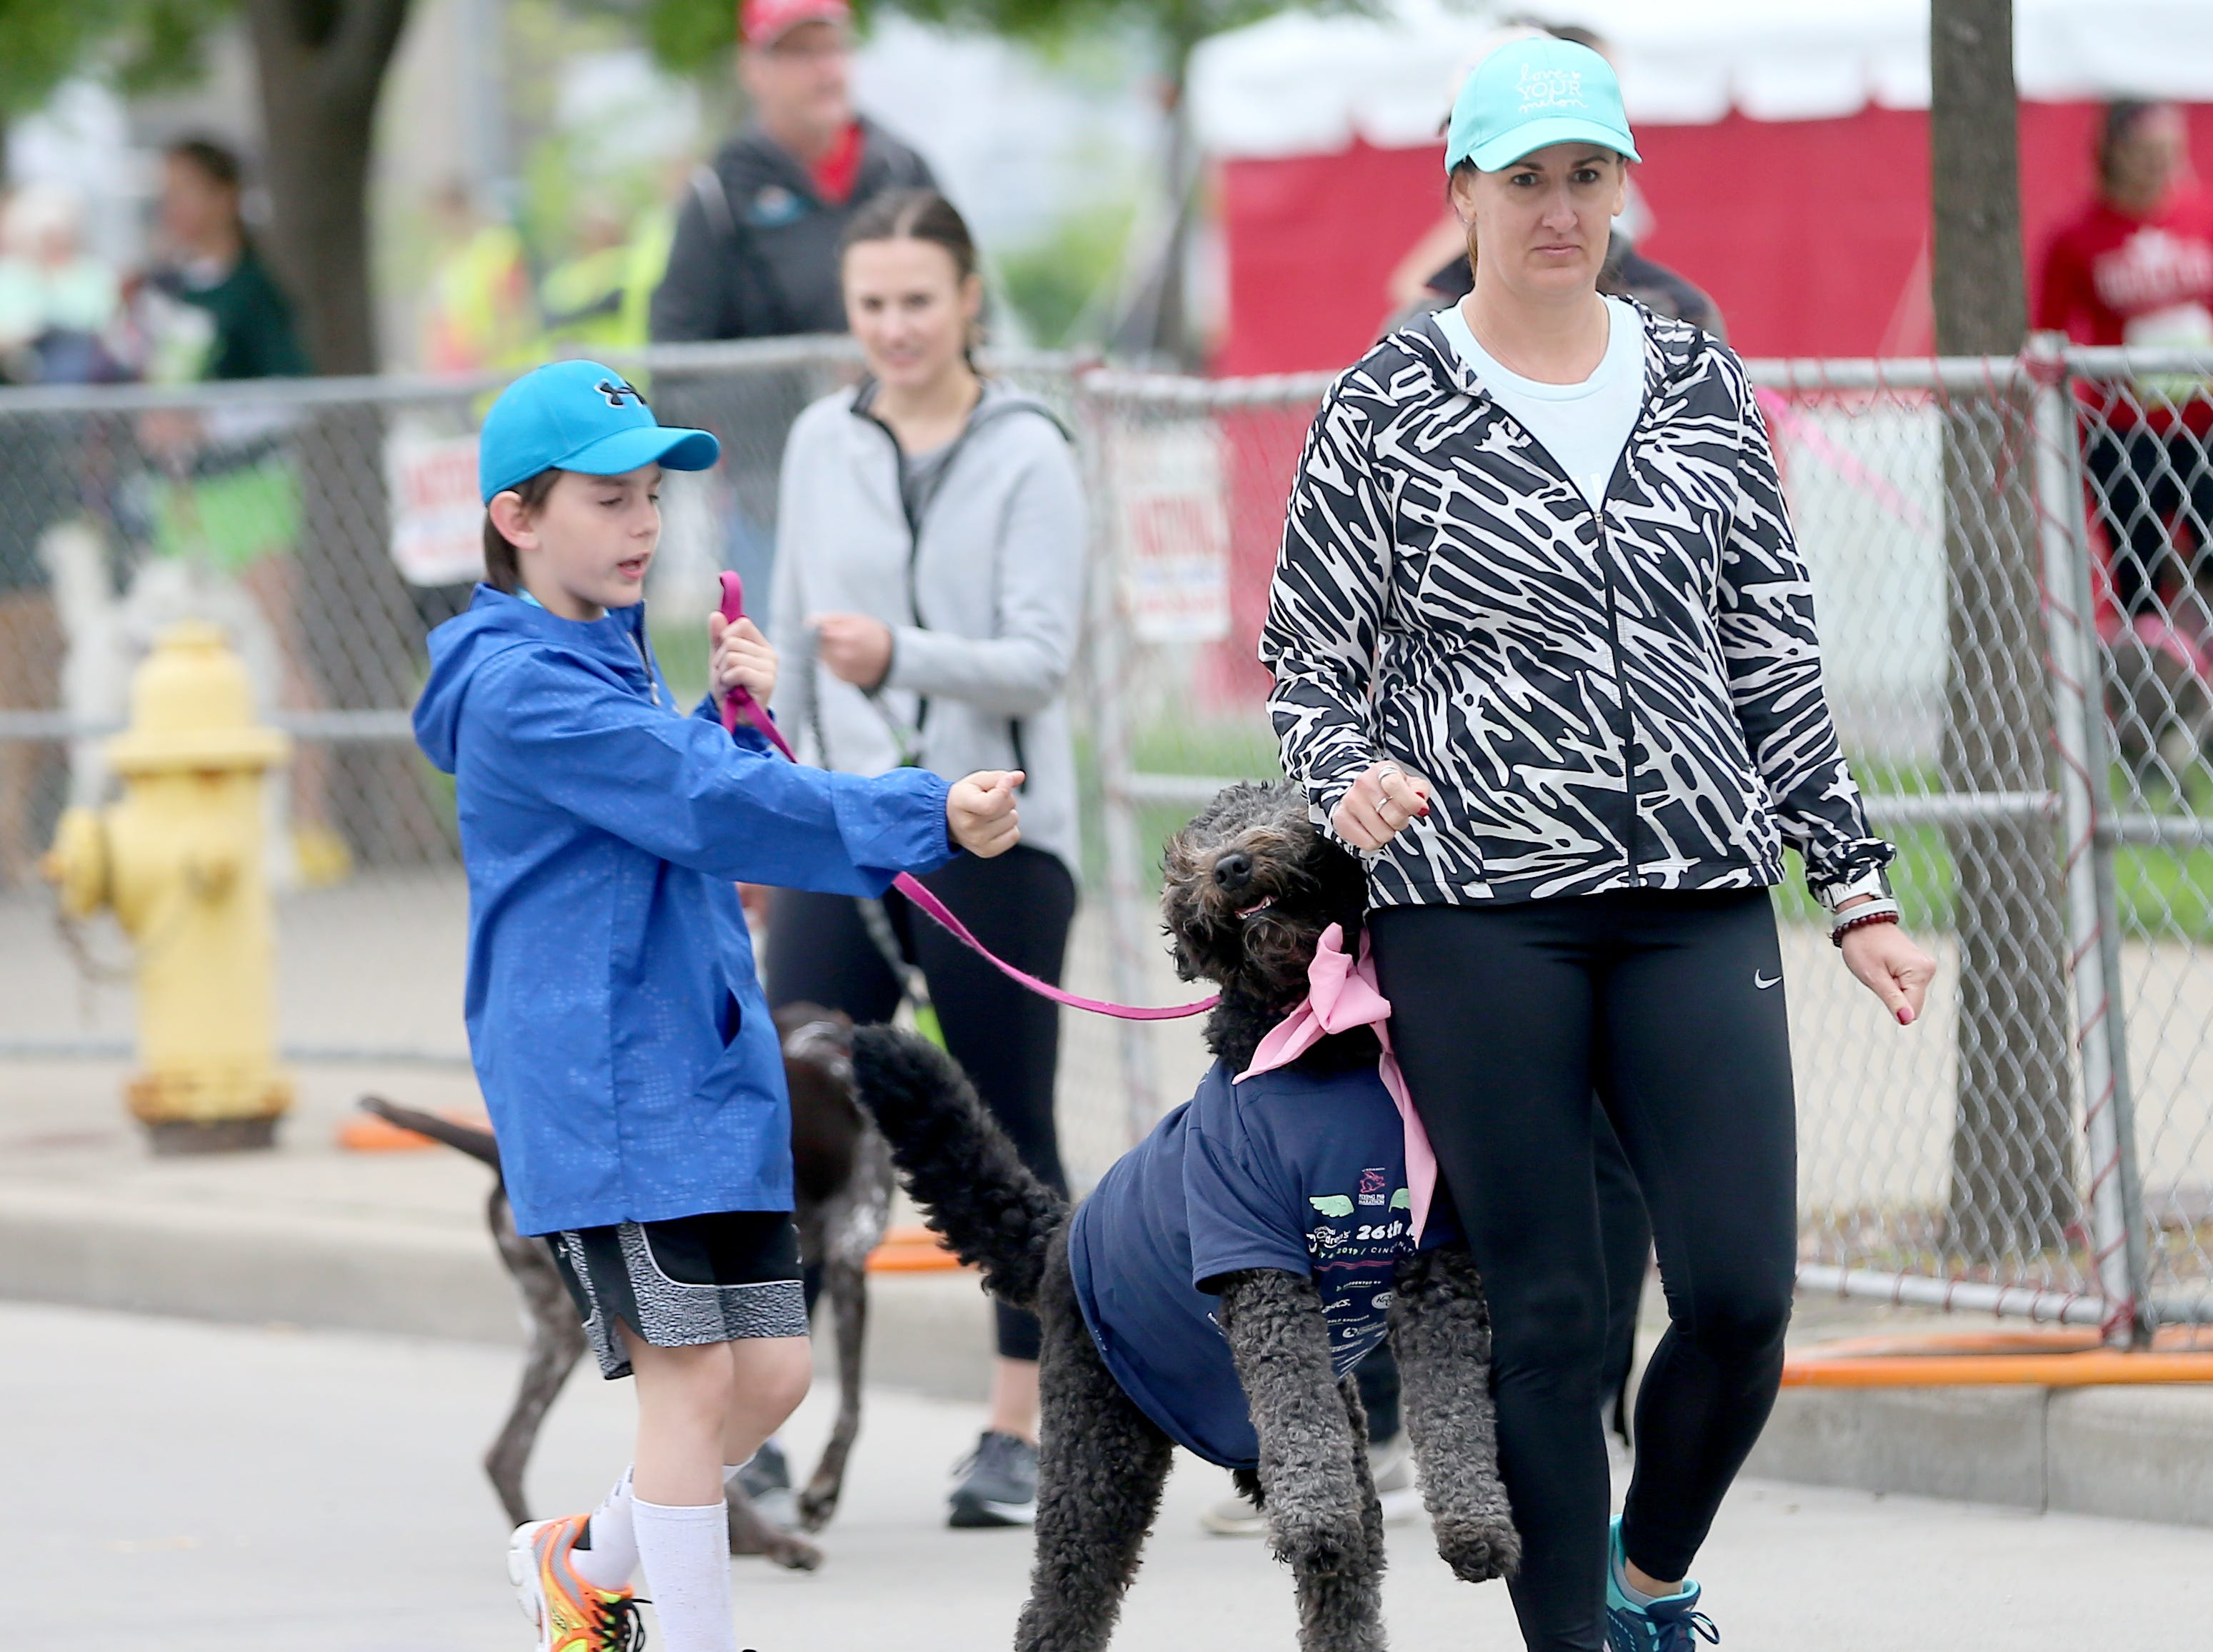 Nicole and Reese  Mardis  with their dog Marley before the Flying Fur race in Downtown Cincinnati, Saturday, May 4,2019.